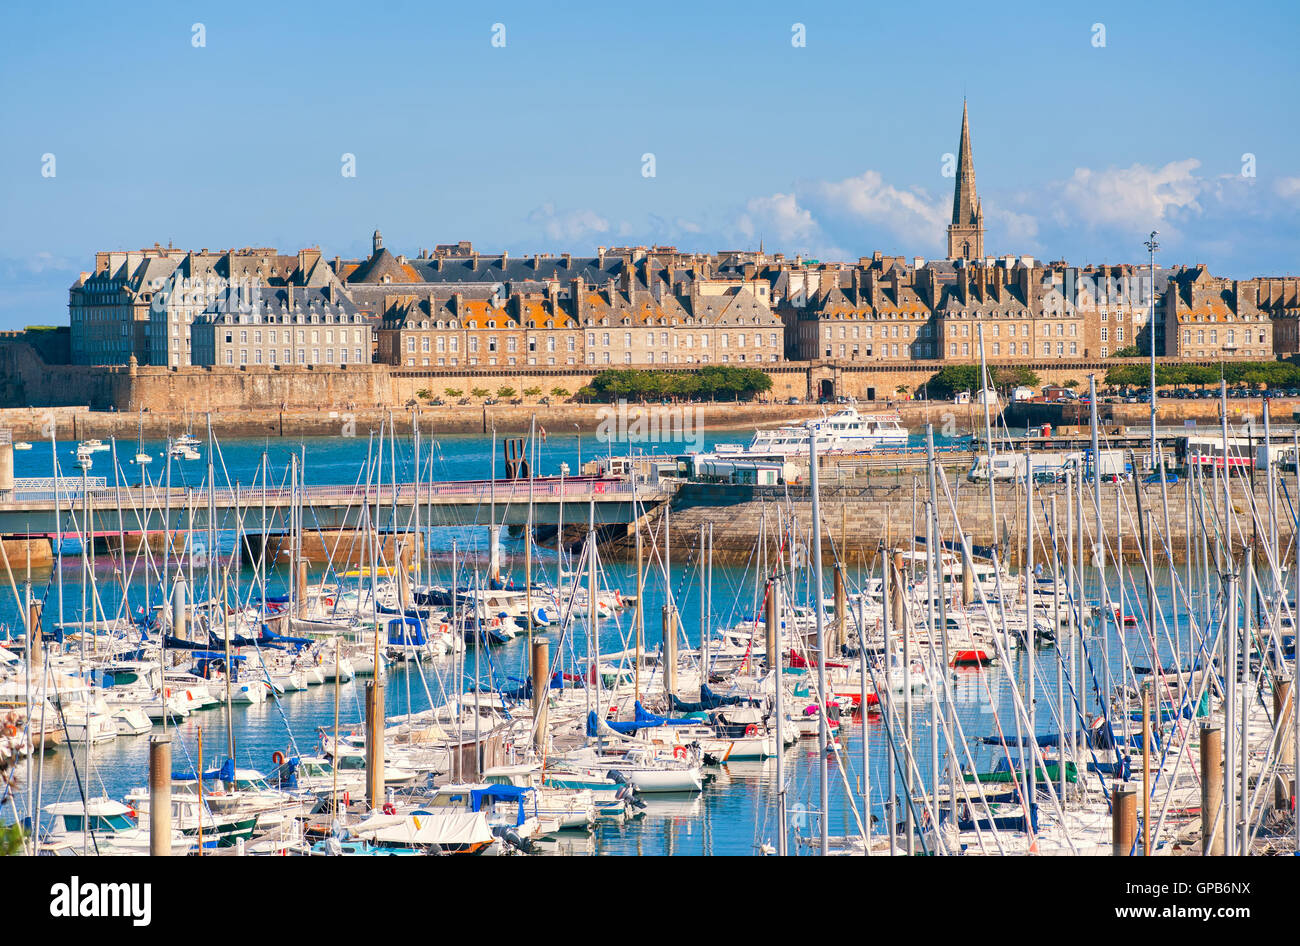 Yacht harbour and walled city of St Malo, Brittany, France - Stock Image